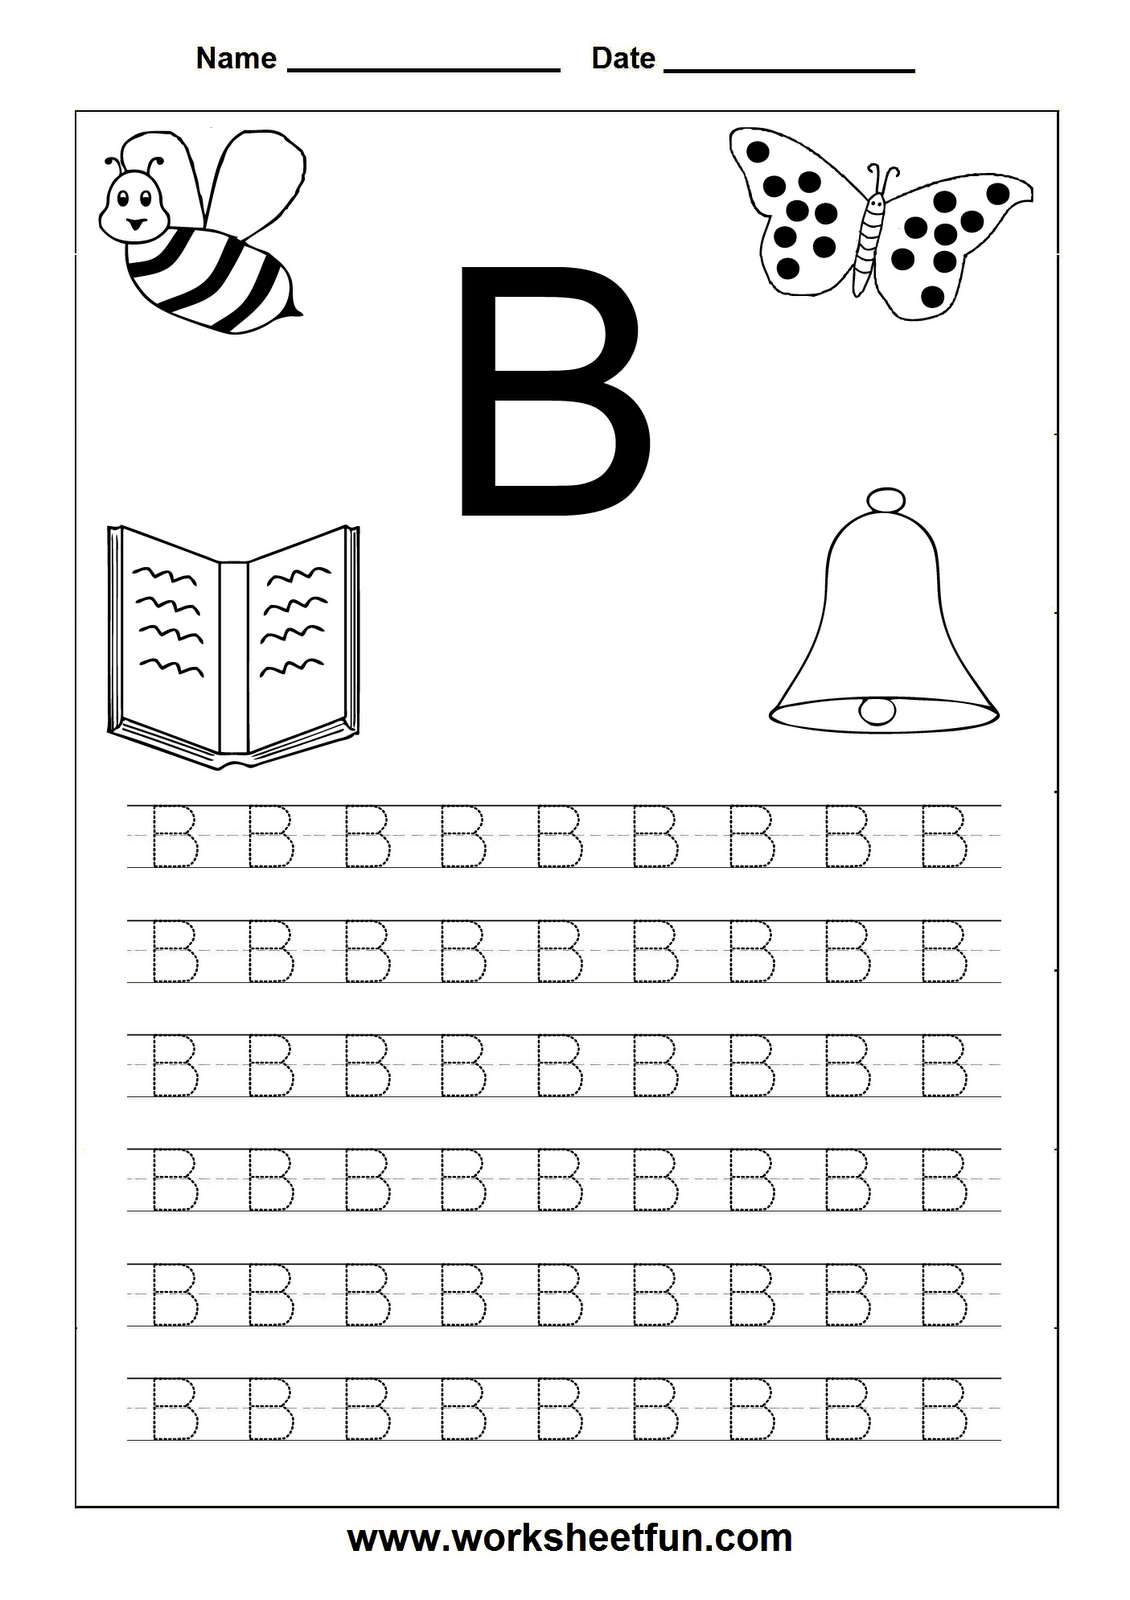 free printables for letter tracing worksheets for kindergarten capital and small letters. Black Bedroom Furniture Sets. Home Design Ideas